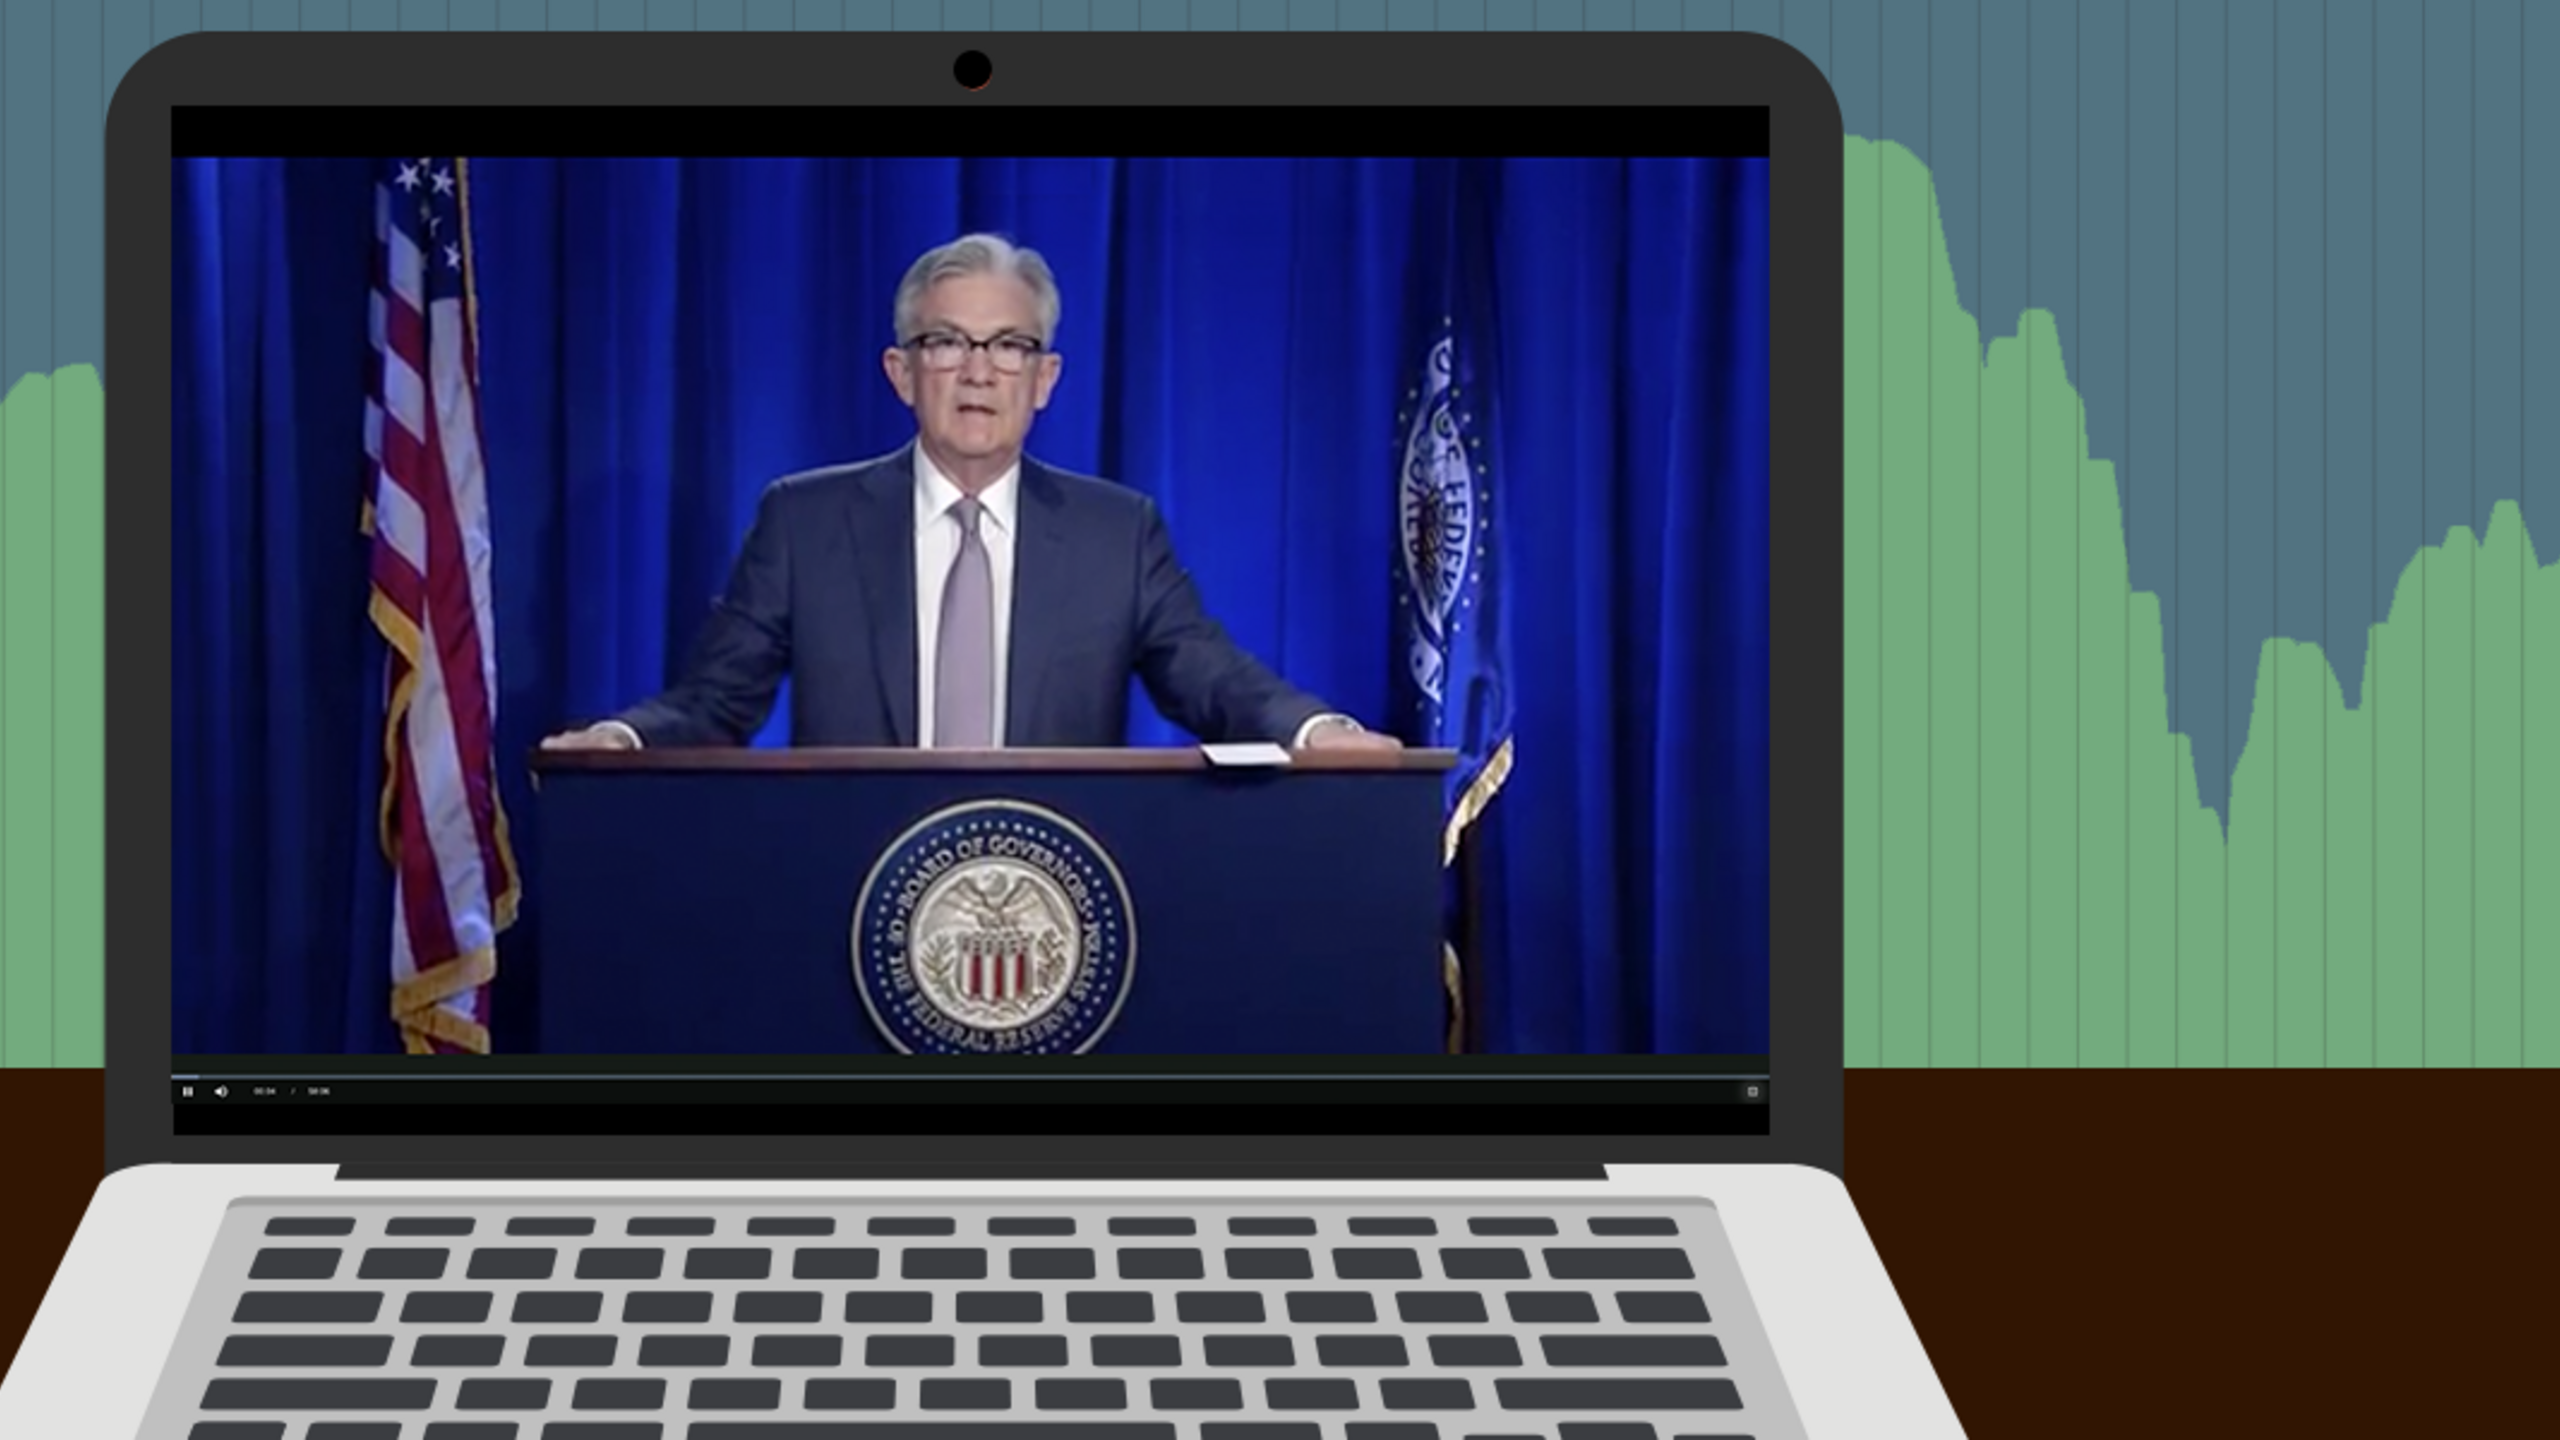 An illustration of Fed chair Jerome Powell speaking on a laptop in front of a stock chart